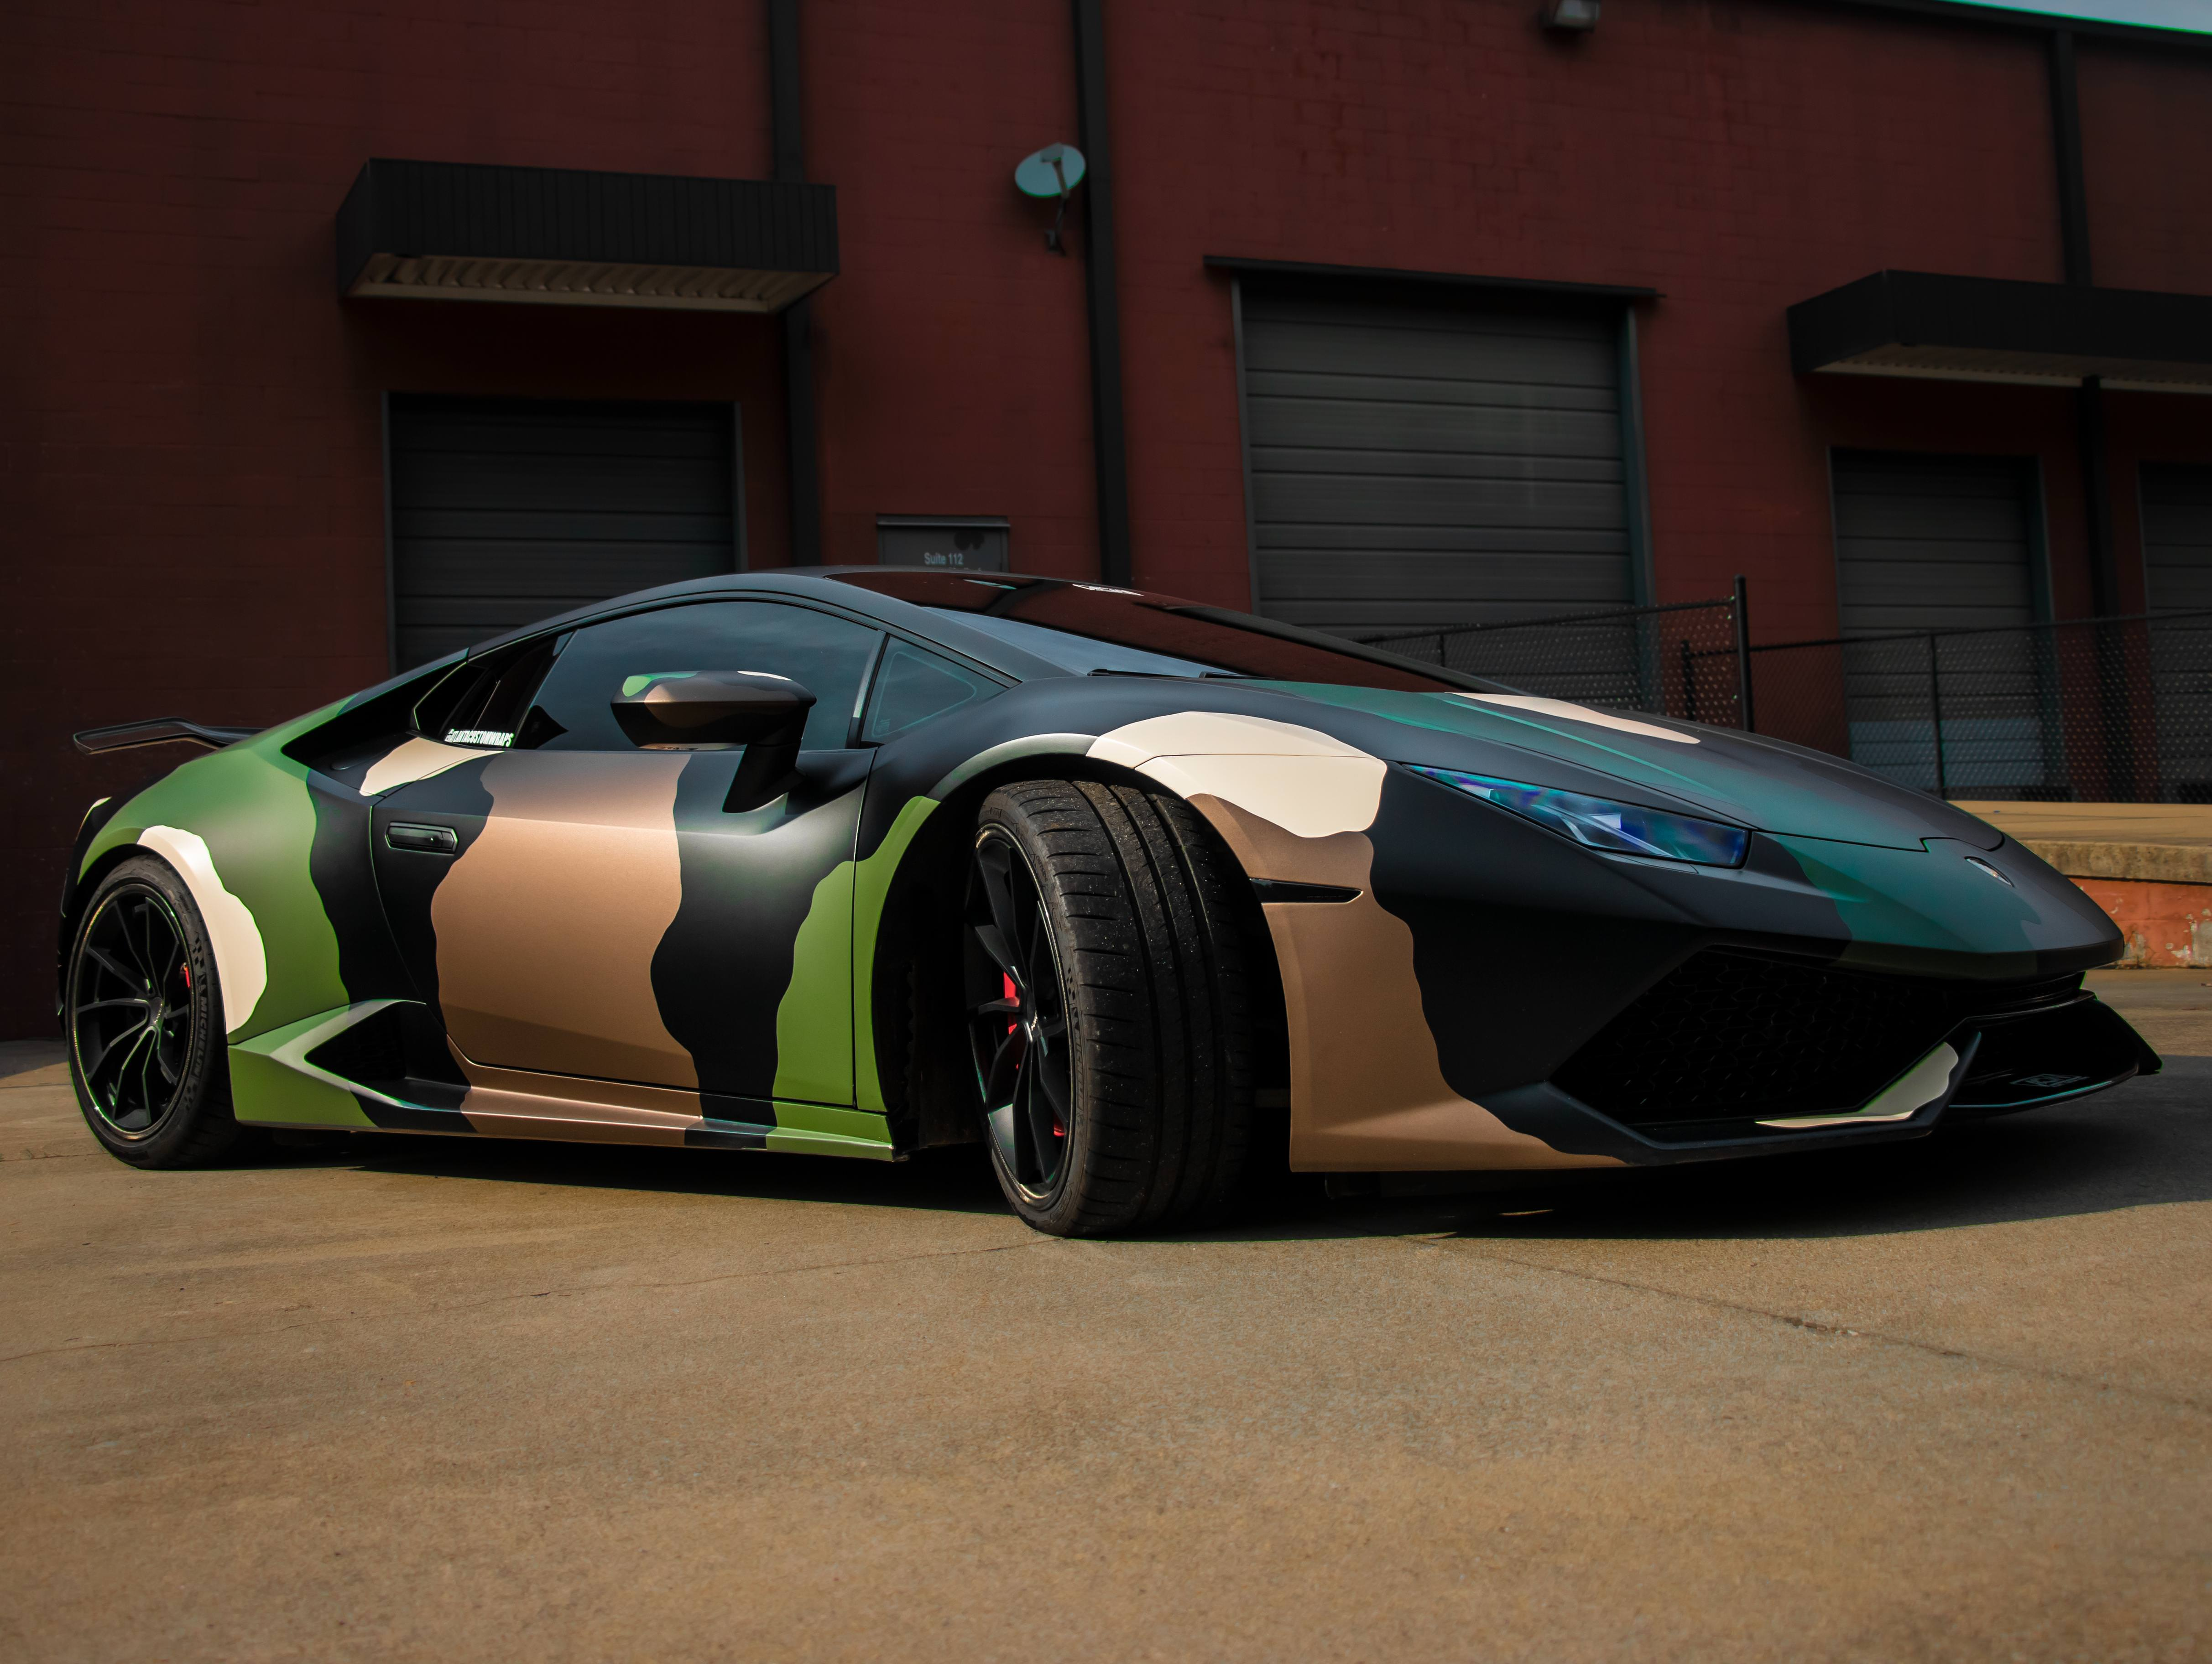 Huracan 4k Wallpapers For Your Desktop Or Mobile Screen Free And